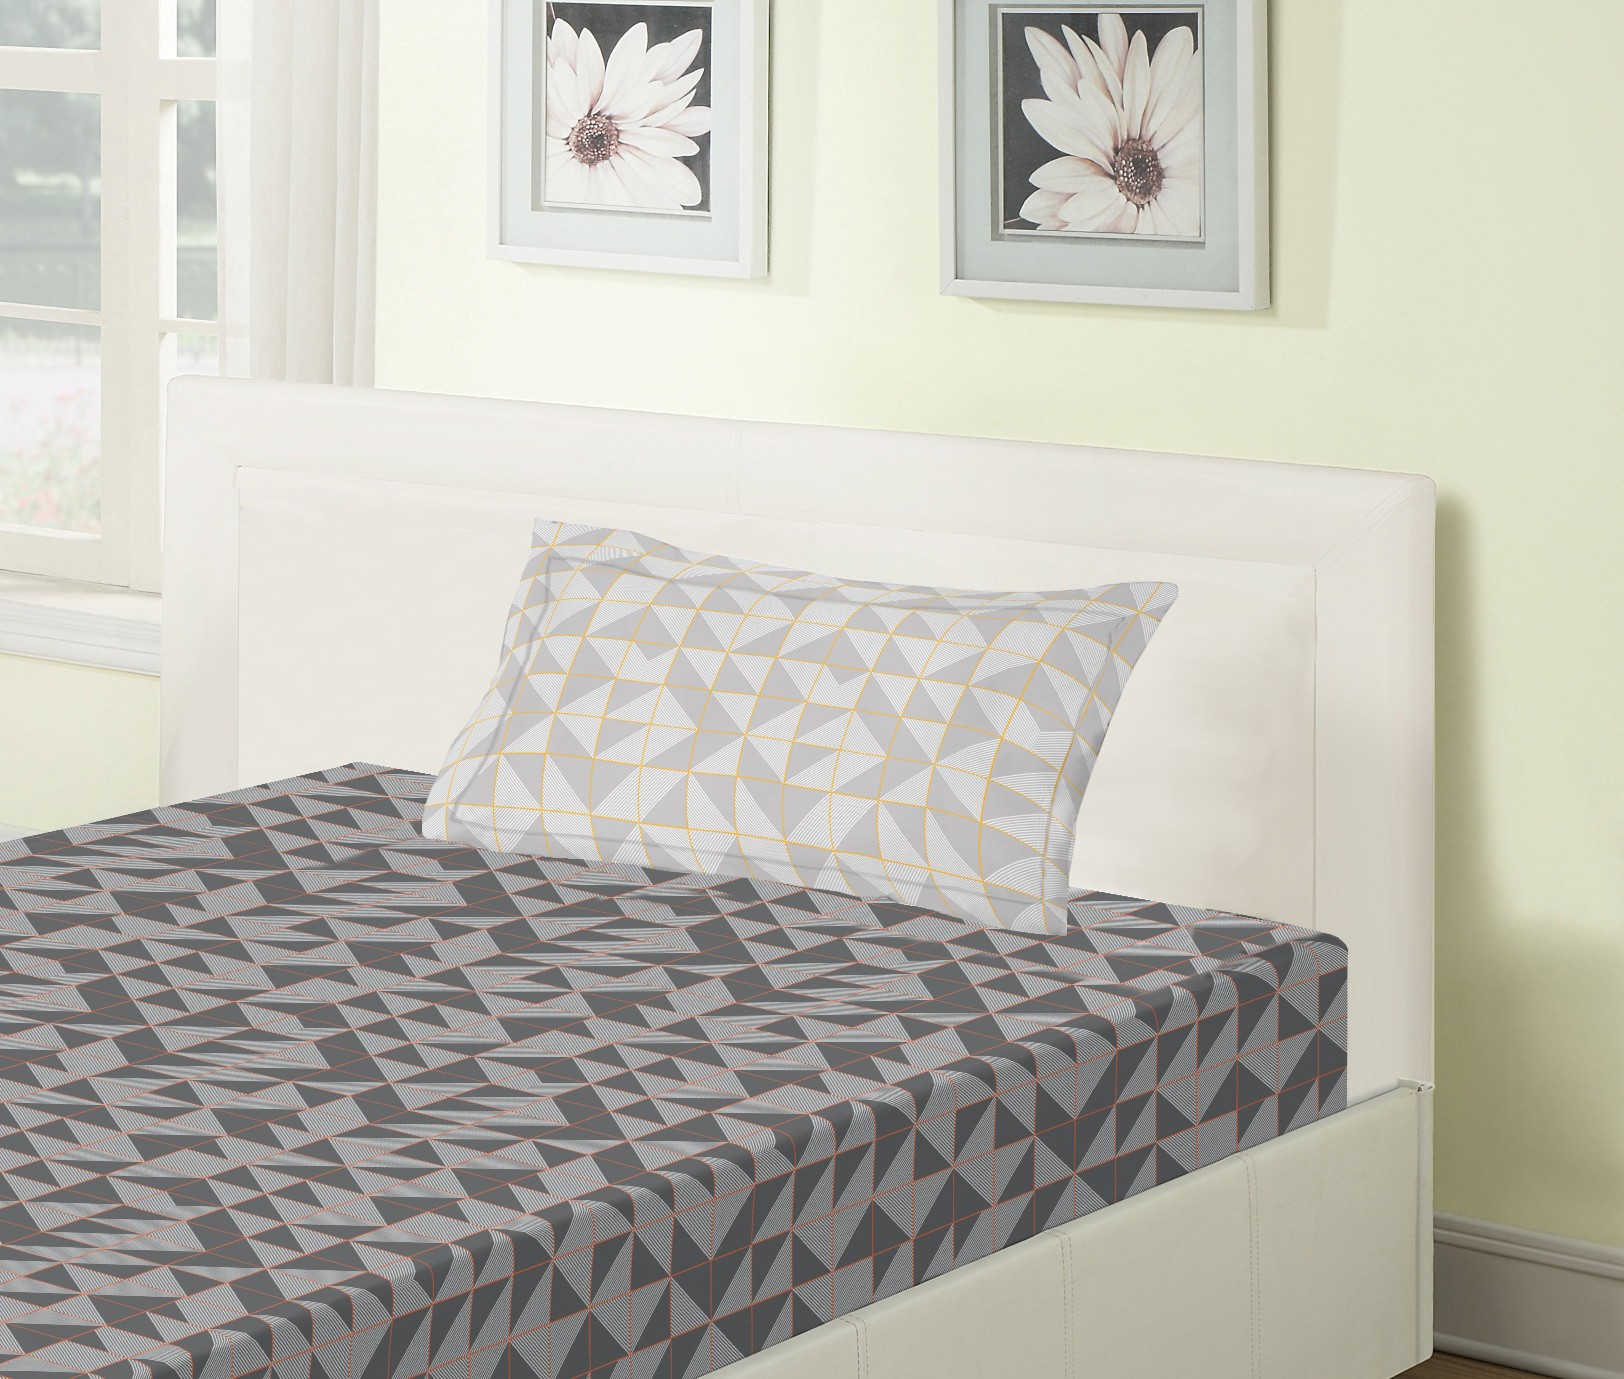 Emilia Cotton Single Bedsheets in Charcoal Colour by Living Essence